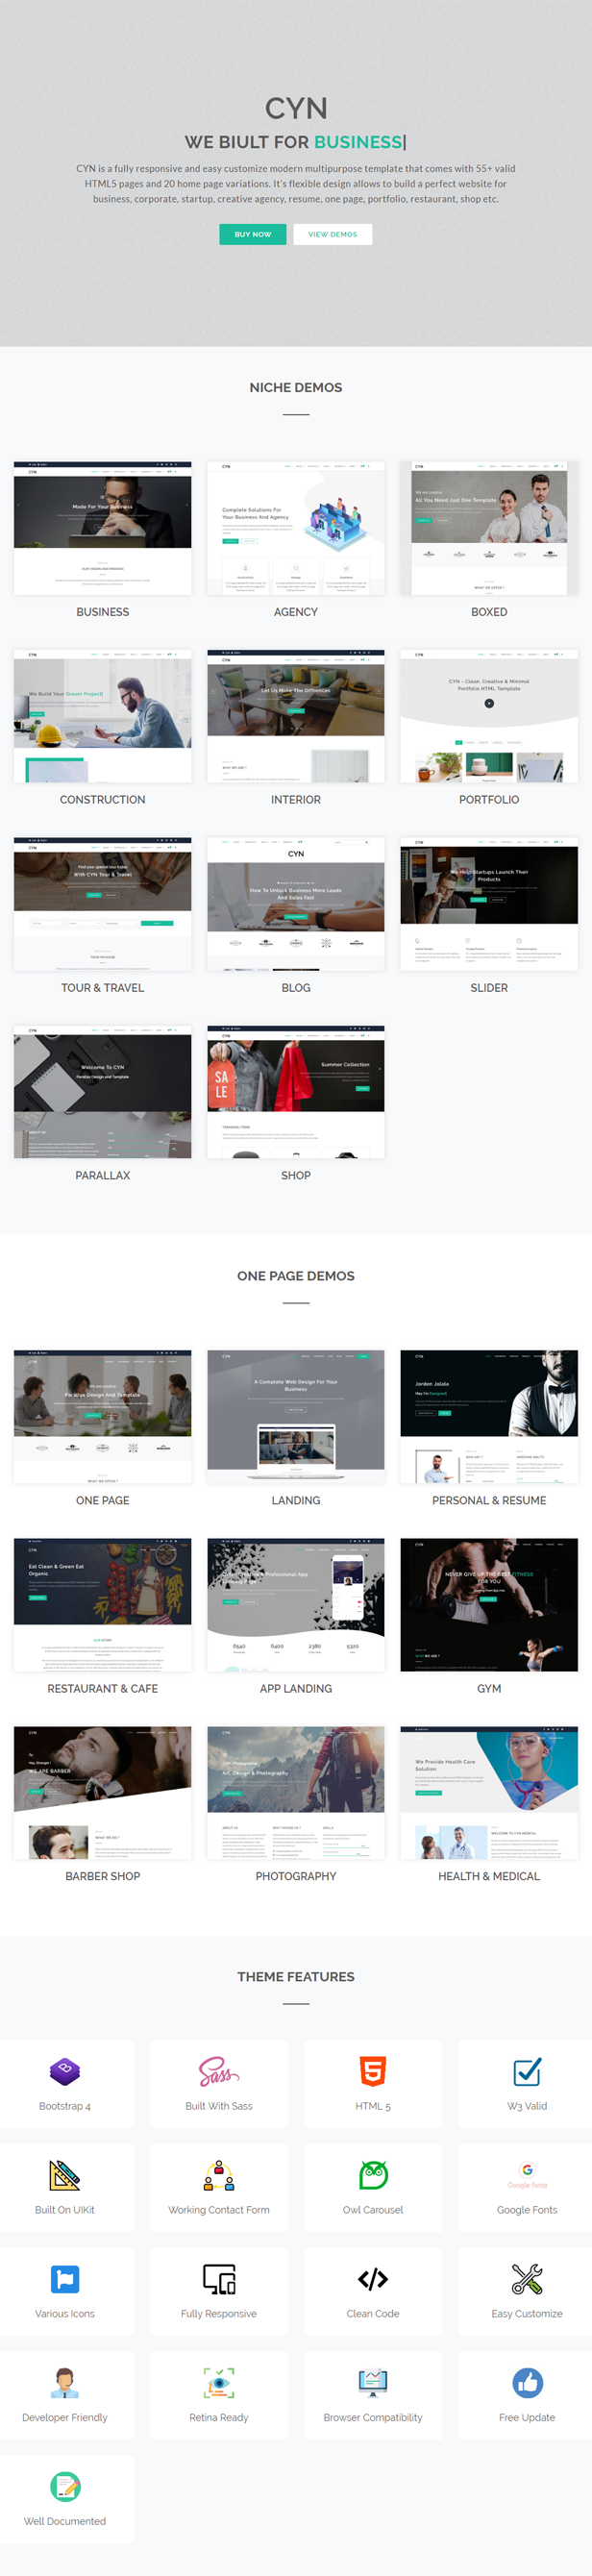 CYN - A Responsive Multipurpose Template - 1